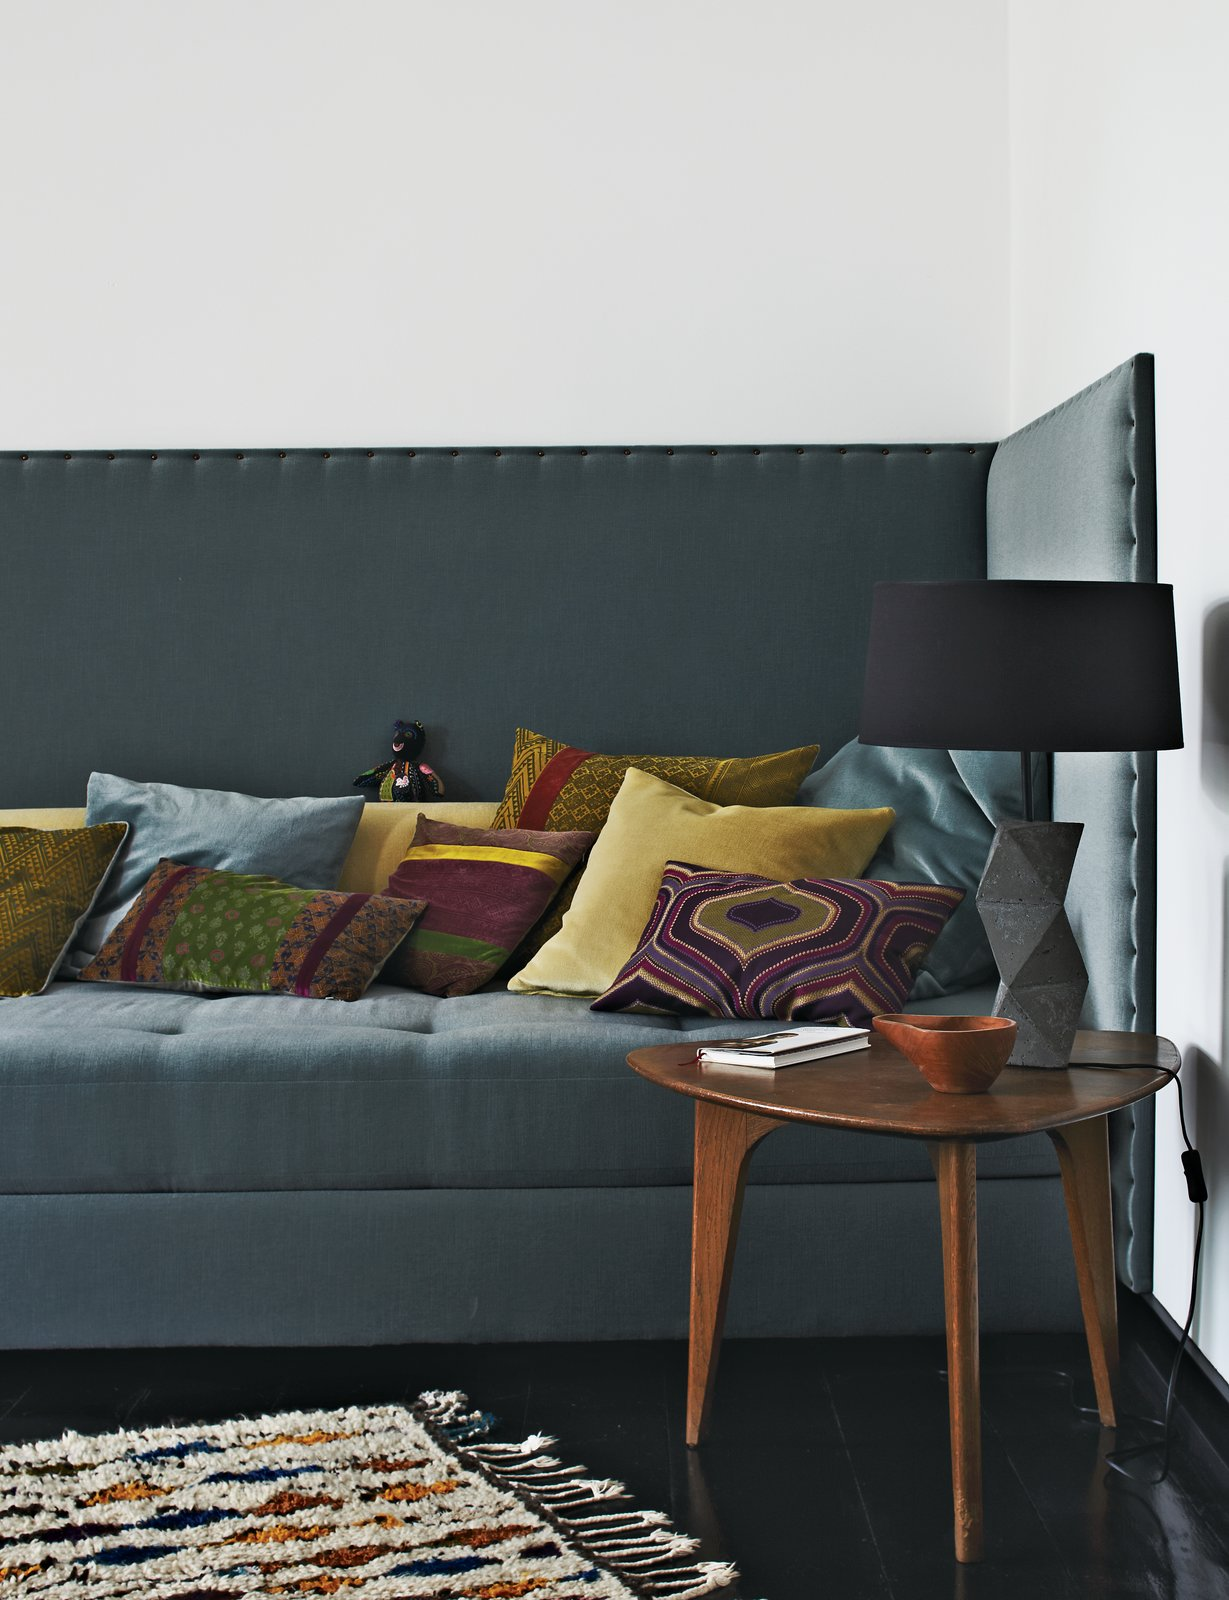 Fehrentz designed the sofa and had it upholstered in fabric by JAB Anstoetz. He cast the concrete base of the table lamp. The 1950s teak coffee table is vintage.  Photo 7 of 11 in Inside Peter Fehrentz's Renovated Flat in Berlin